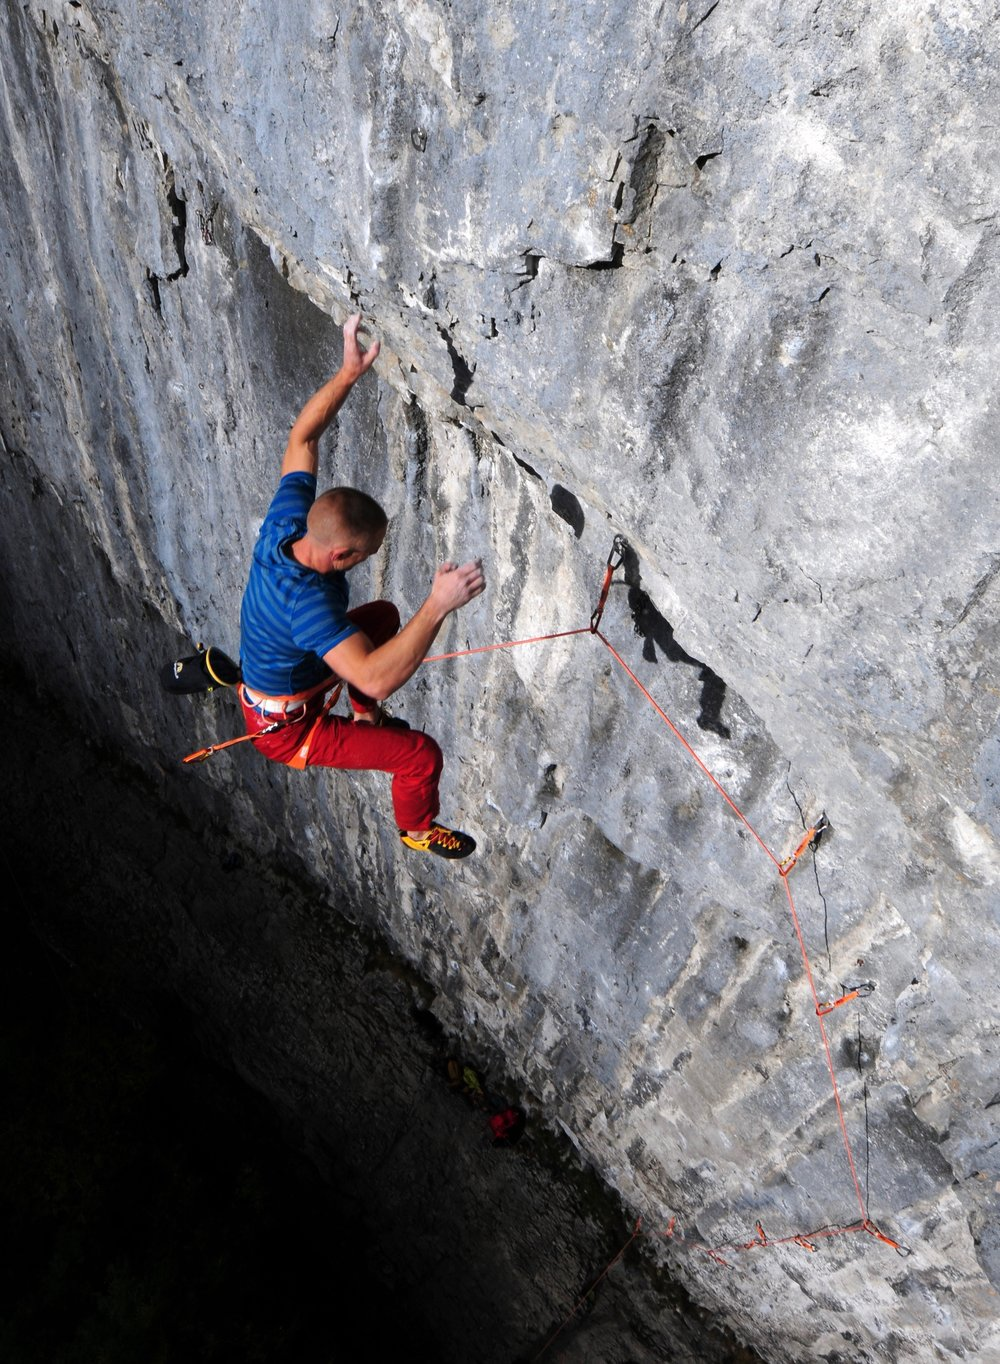 The Volta 9.0mm Guide holds takes the strain from the crux of Sabotage 8c+. Photo Ian Parnell